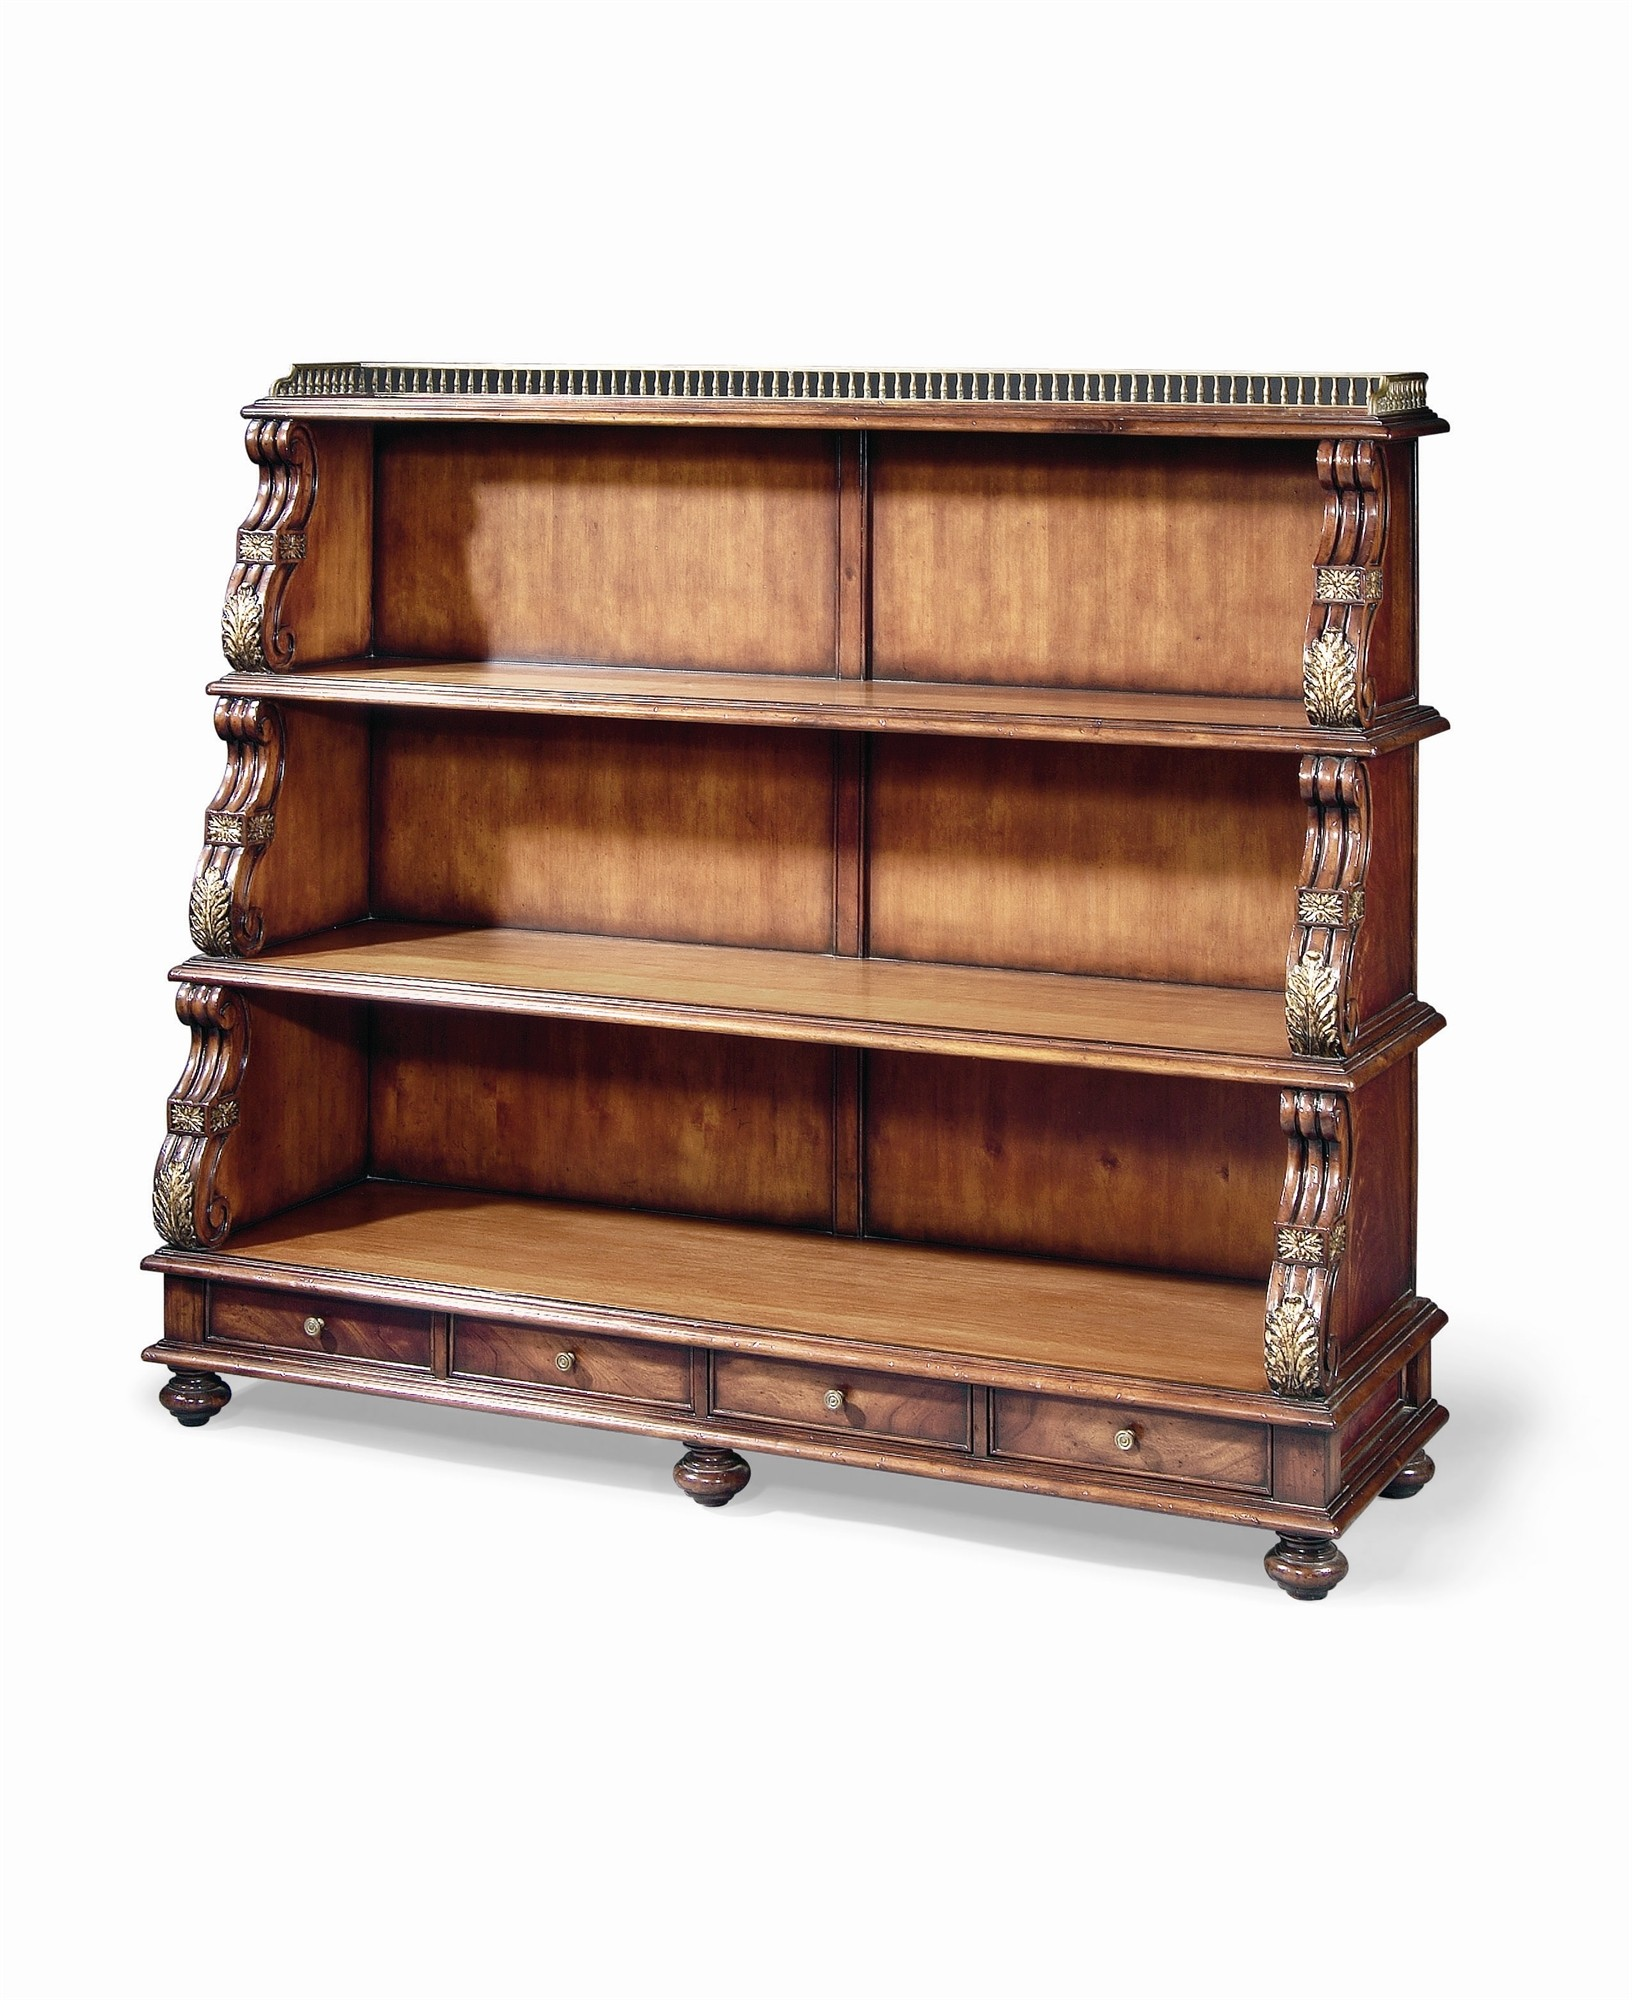 Large Regency Revival Bookshelf